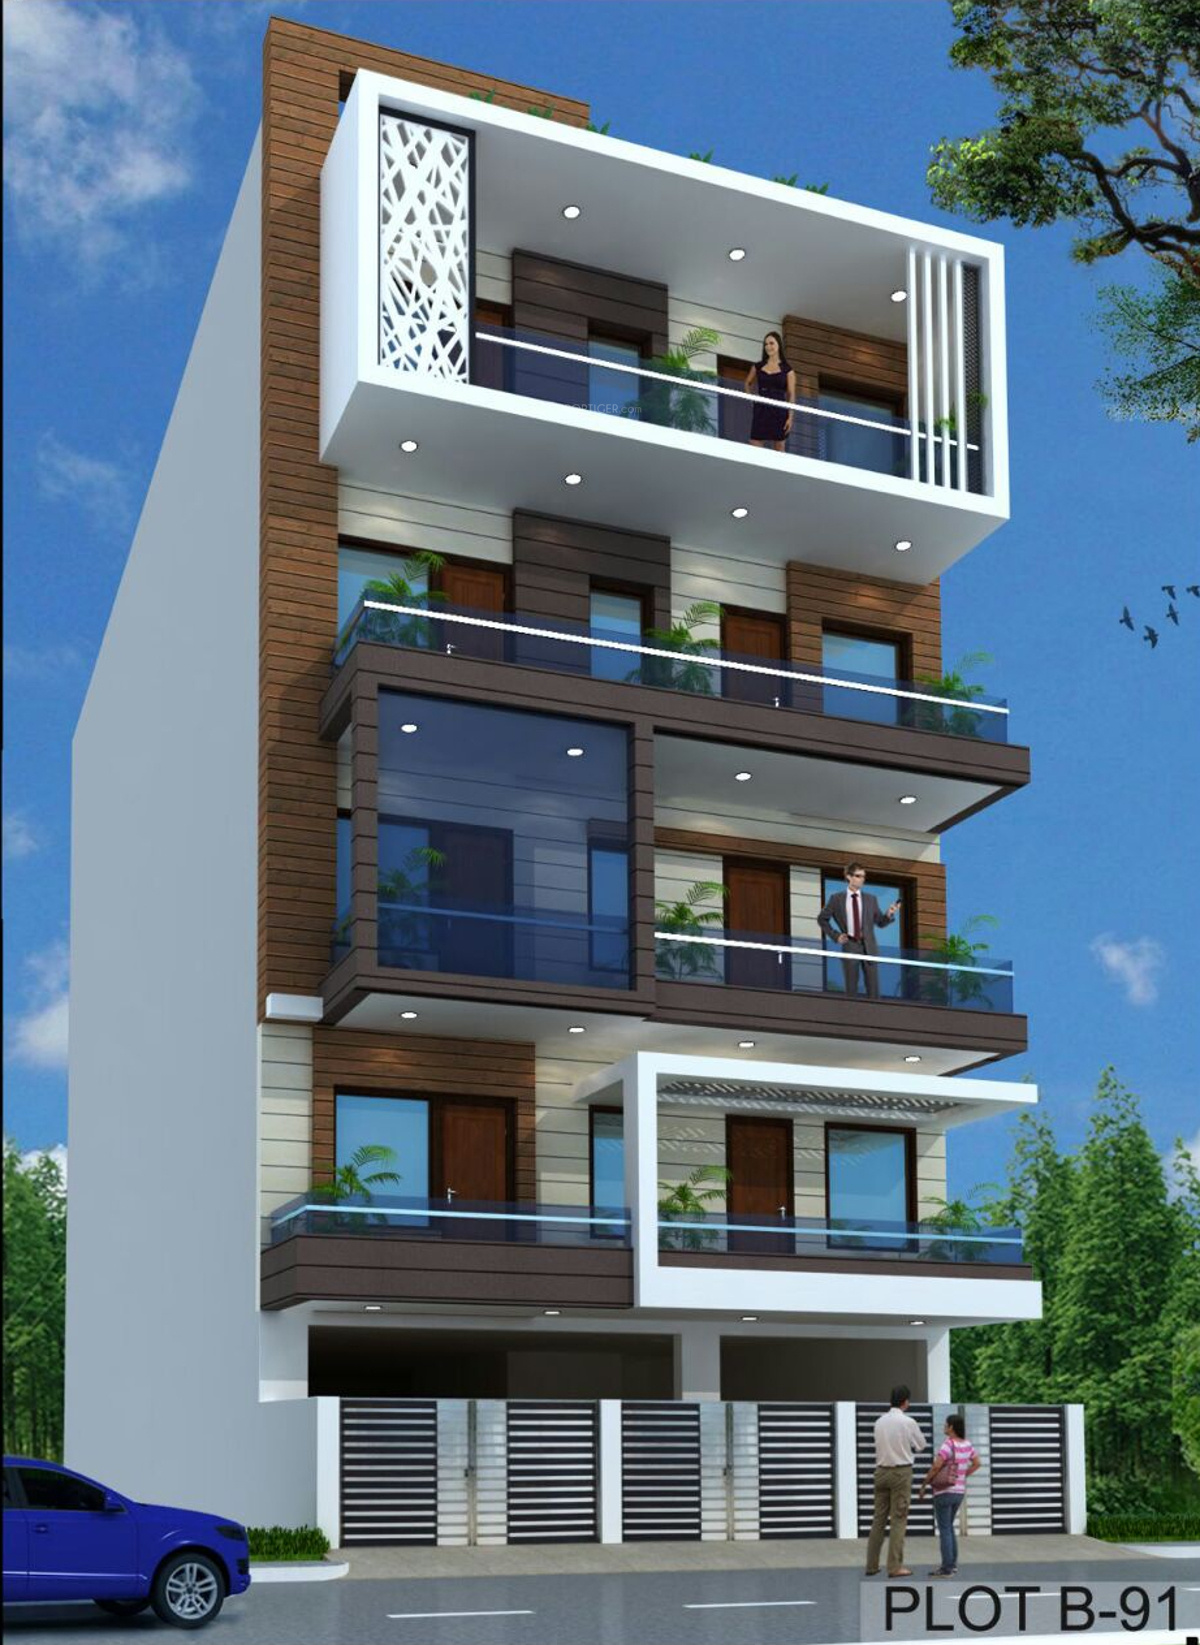 Home Design Ideas Elevation: 1800 Sq Ft 4 BHK 4T Apartment For Sale In Aggarwal Estate